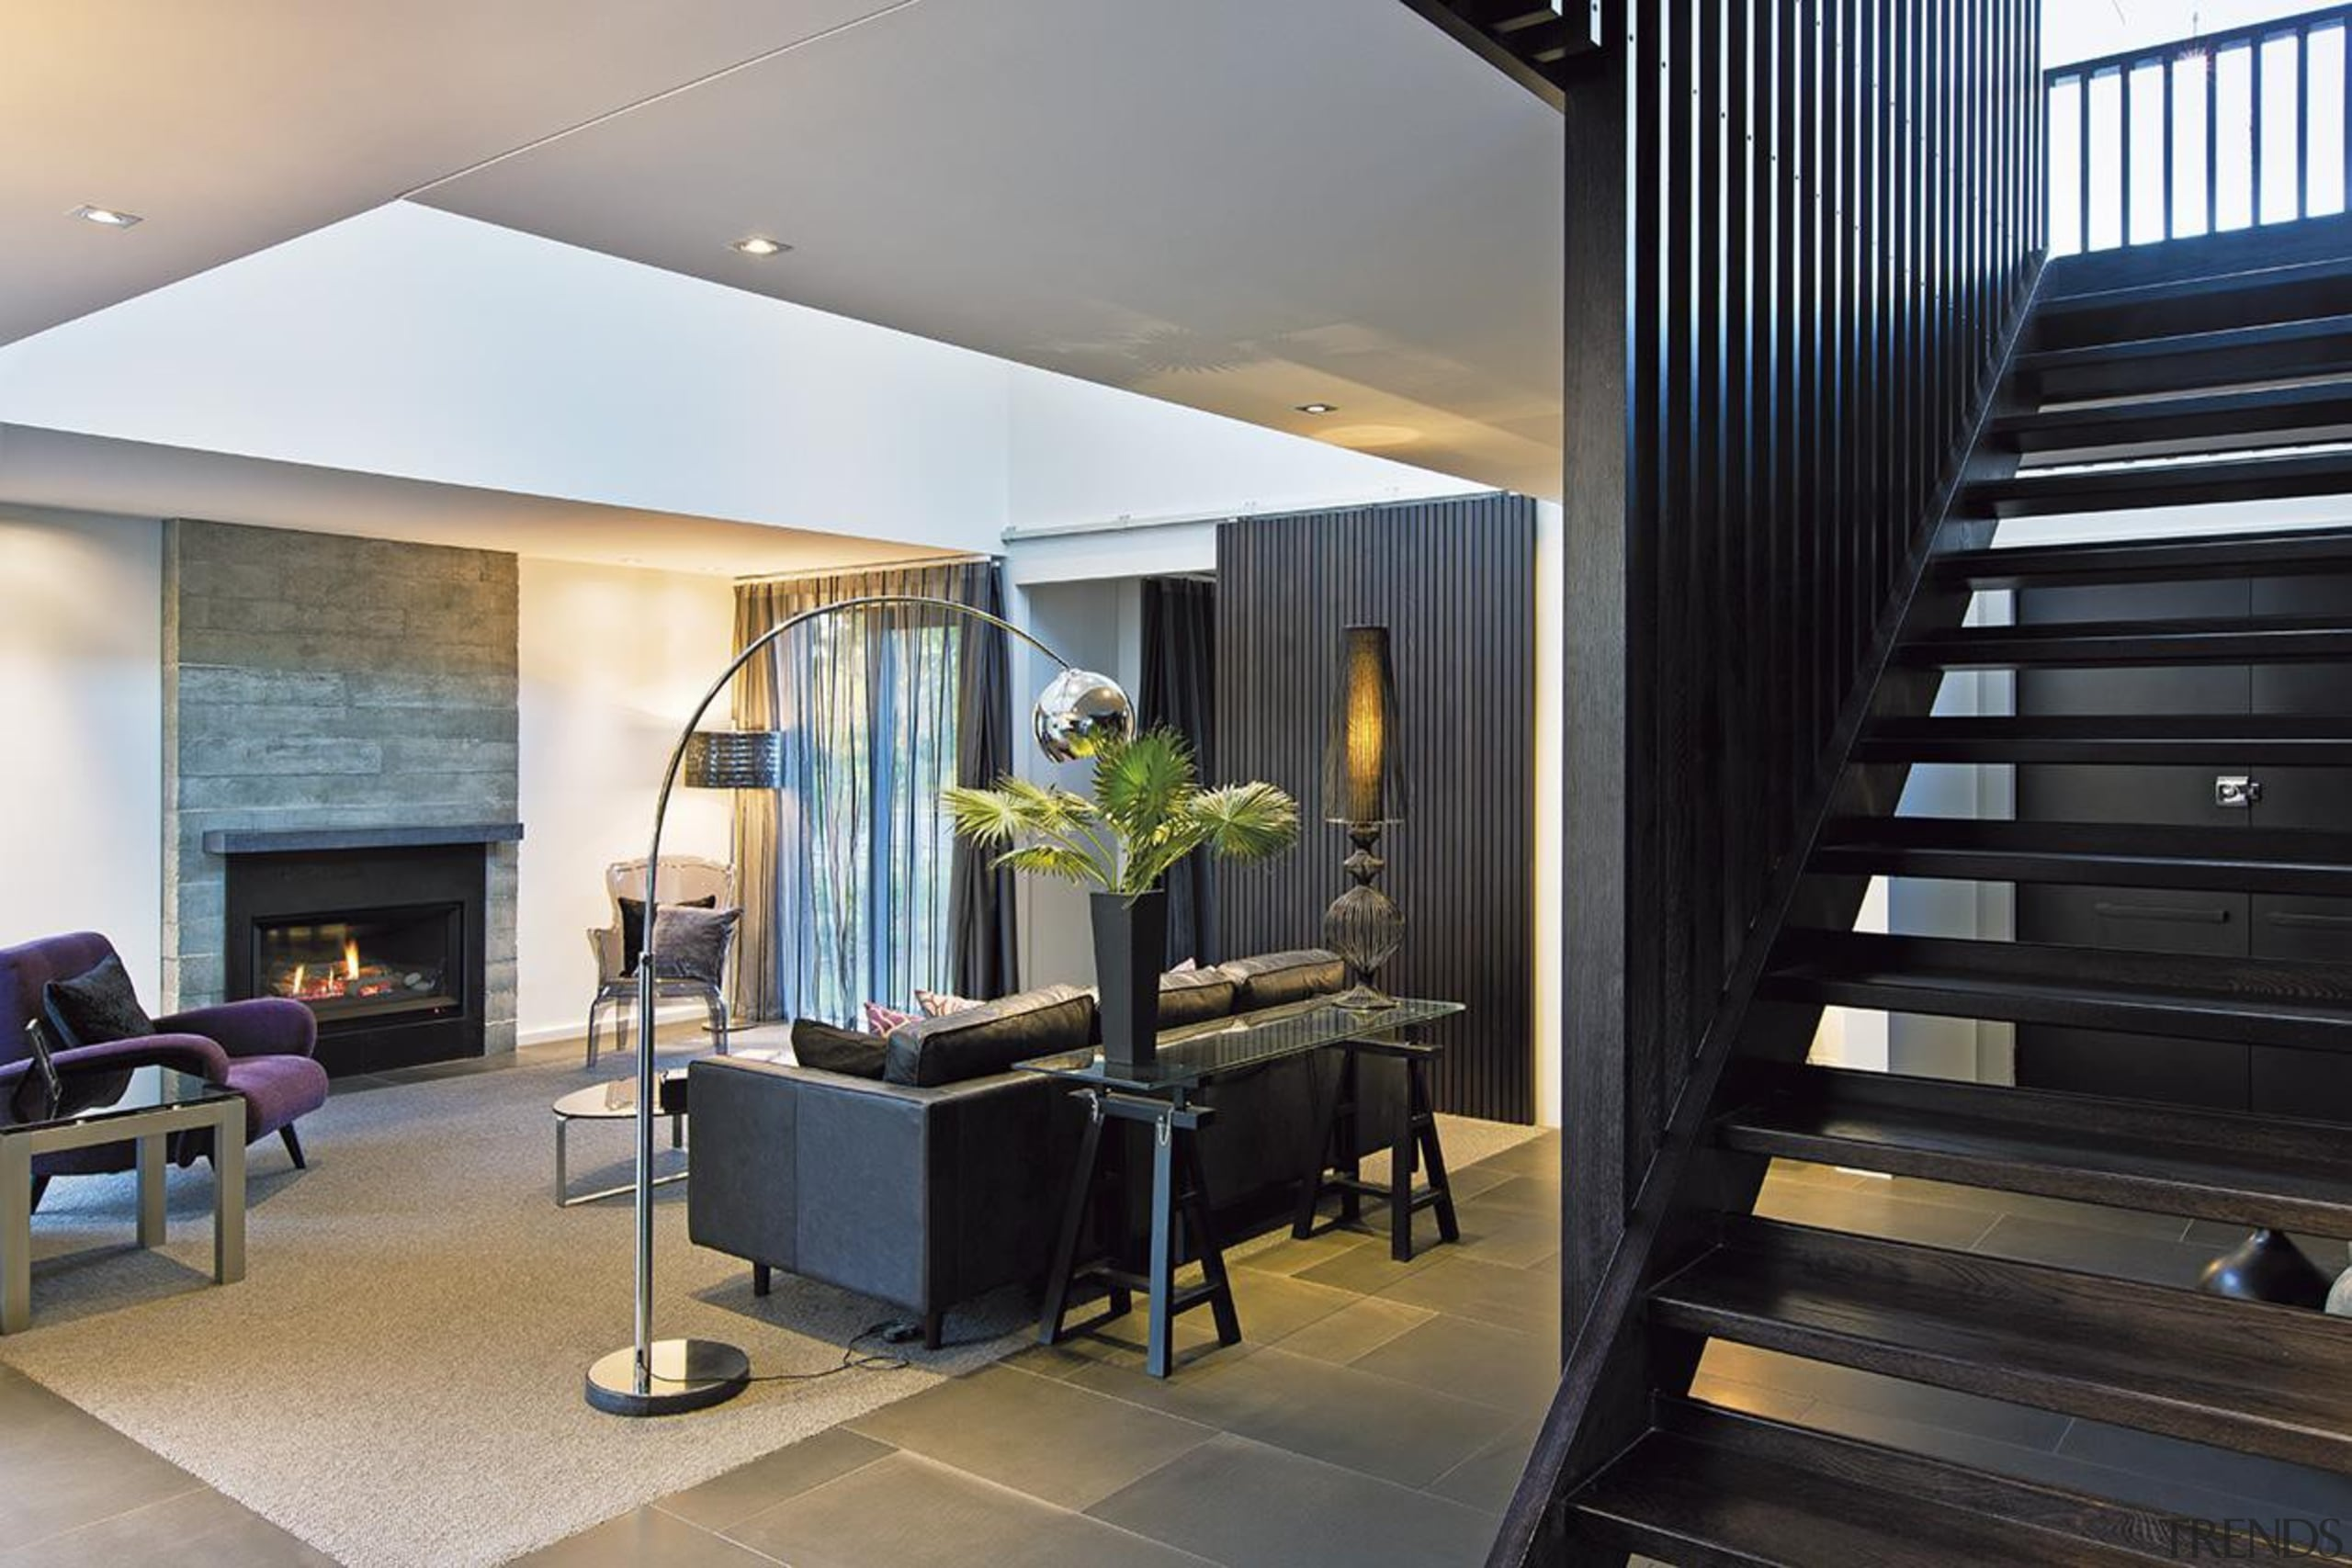 For more information, please visit www.gjgardner.co.nz architecture, ceiling, house, interior design, living room, real estate, black, gray